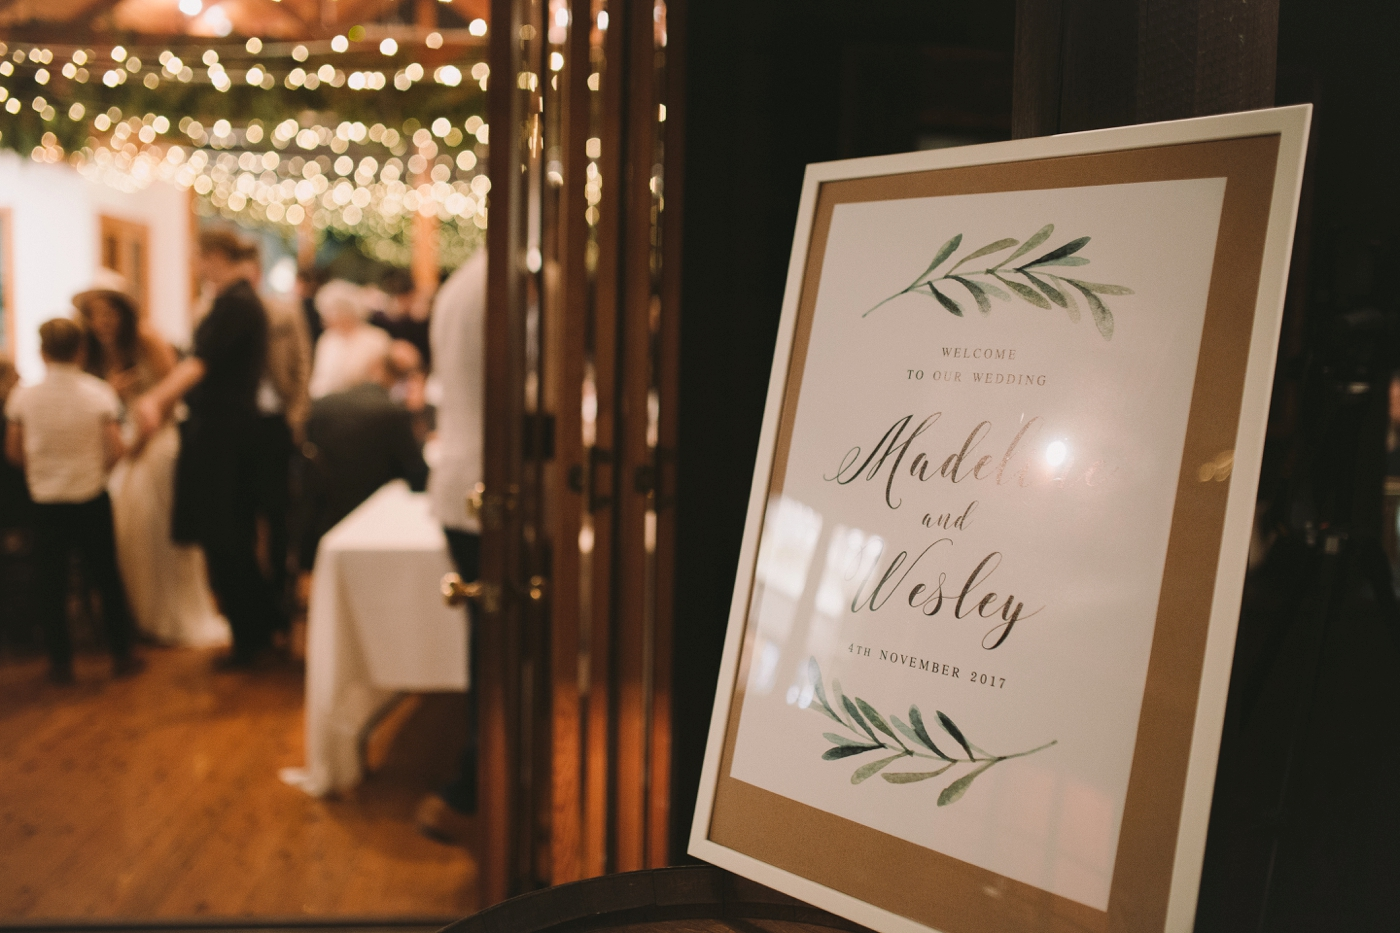 Maddy & Wes - K1 by Geoff Hardy Wedding - Adelaide Wedding Photographer - Natural wedding photography in Adelaide - Katherine Schultz_0078.jpg